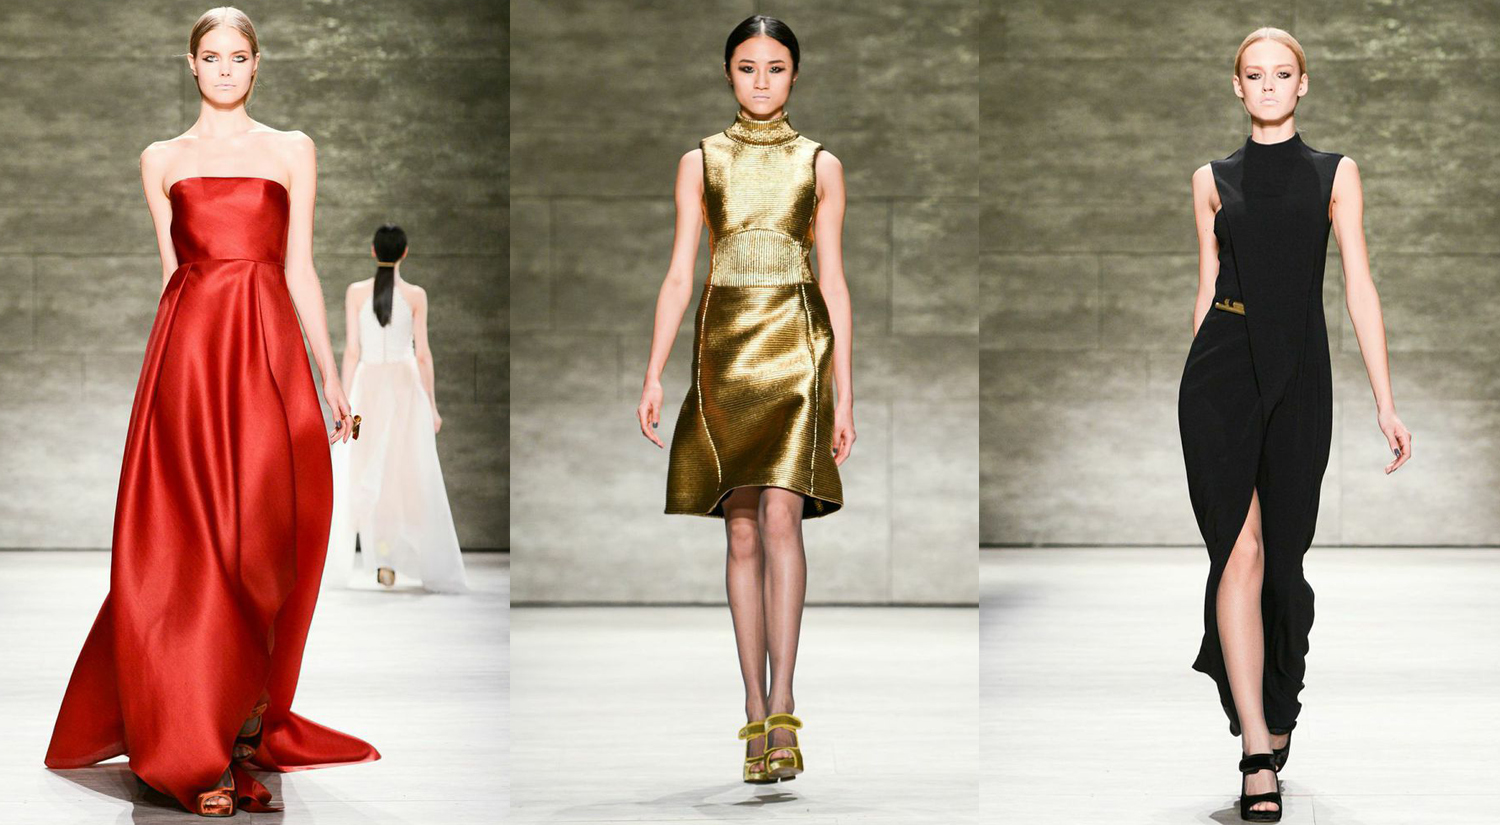 Image above:Images courtesy of Billy Farrell Agency at Fashion Week 2015.